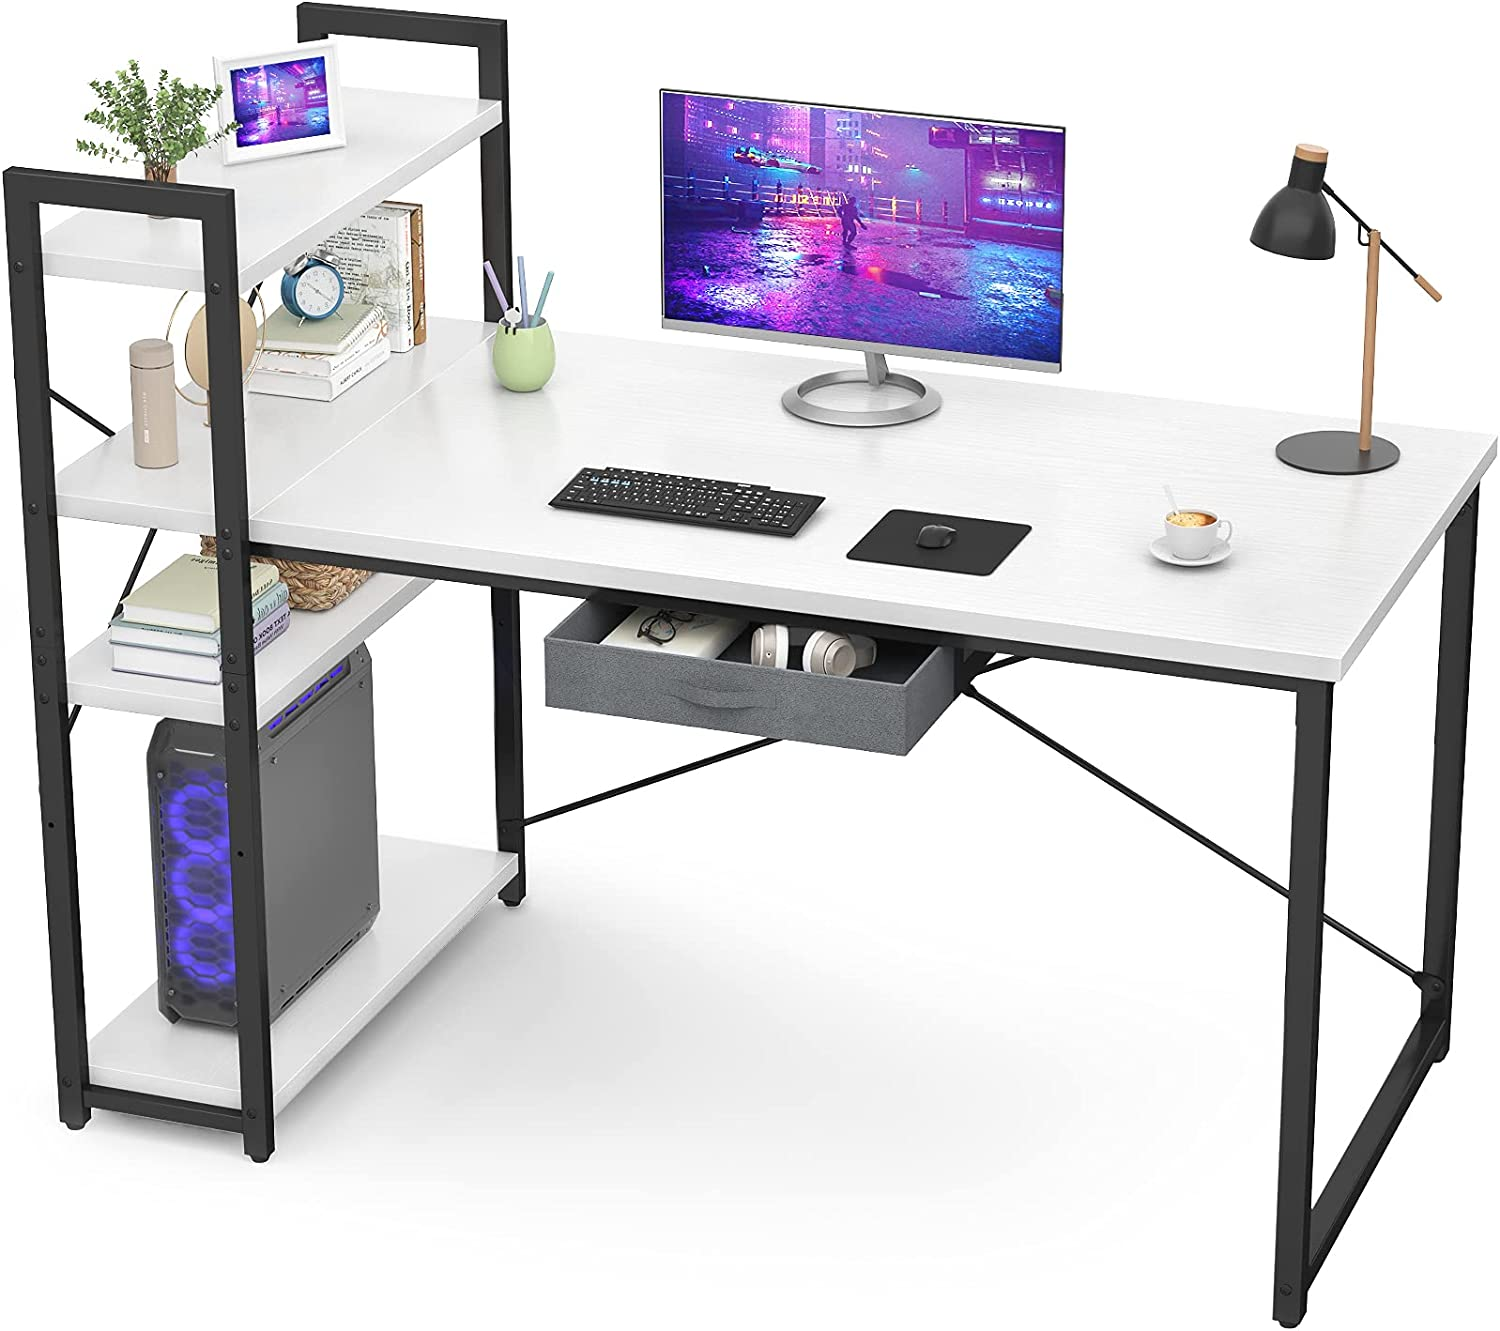 Armocity Computer Desk with Storage Shelves 47 Inch Desk with Storage Drawers 2 Person Desk with Reversible Bookshelves Study Writing Table for Home Office Workstation Bedroom Small Space, White